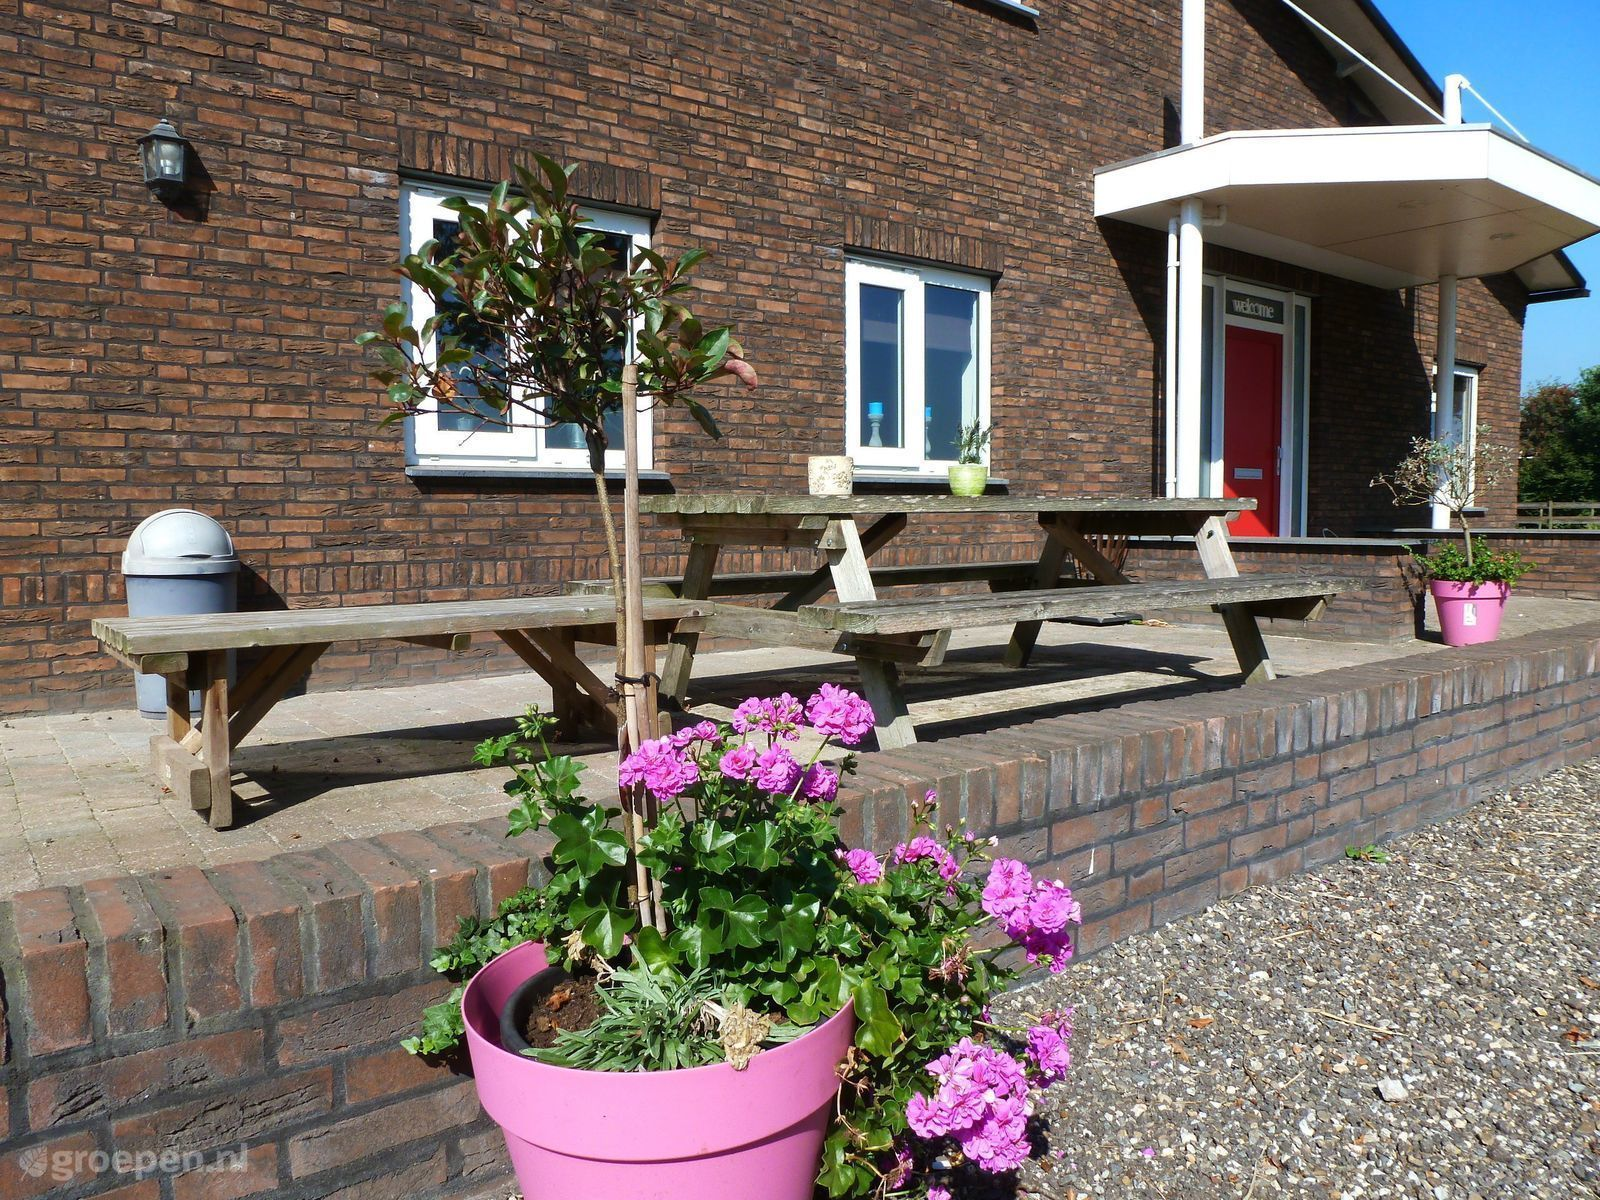 Group accommodation Venhorst